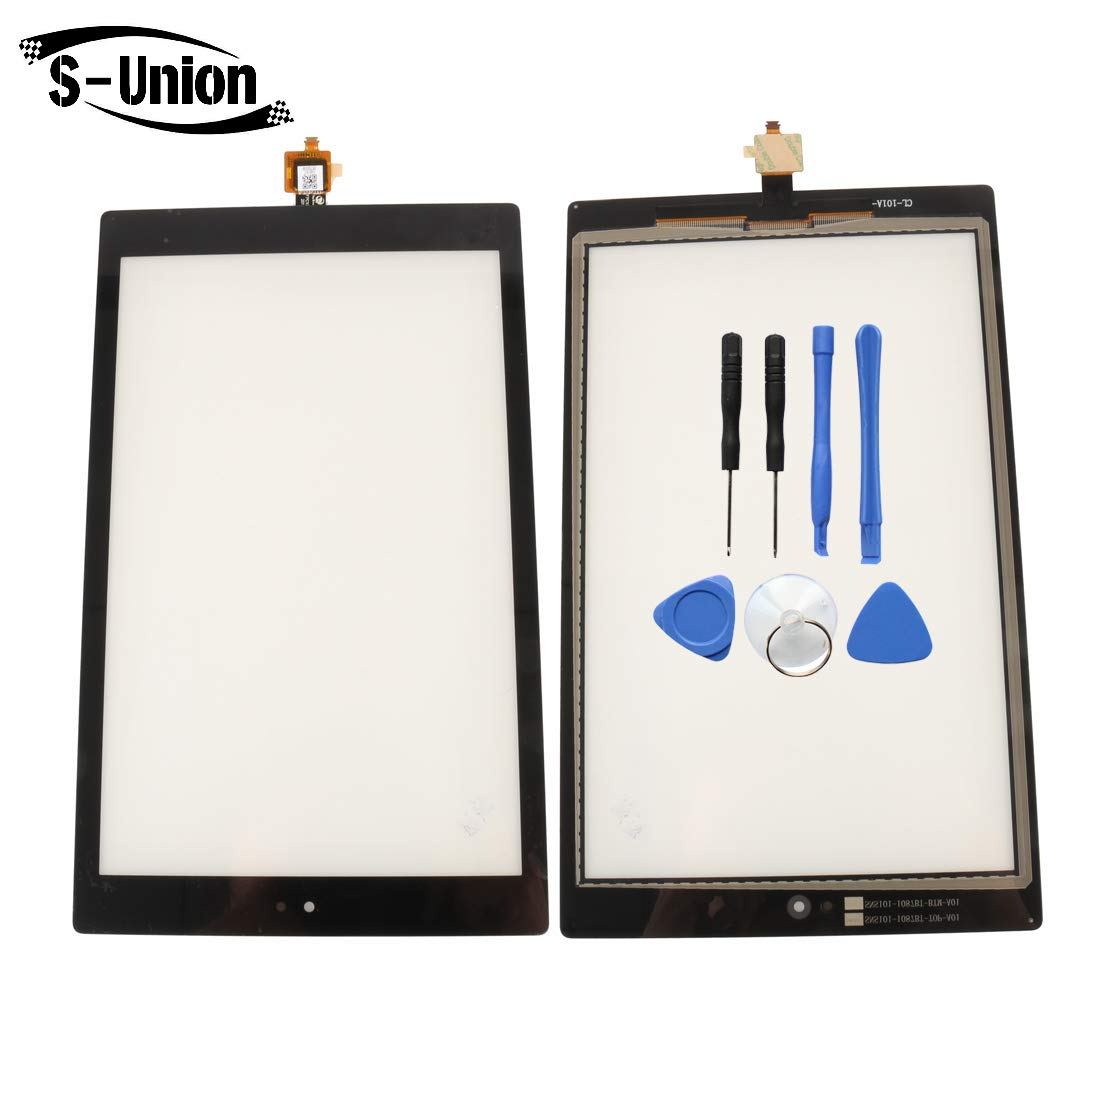 S-Union New Replacement Touch Screen Digitizer for Amazon Kindle Fire HD10 7TH SL056ZE (Comes with Tools)